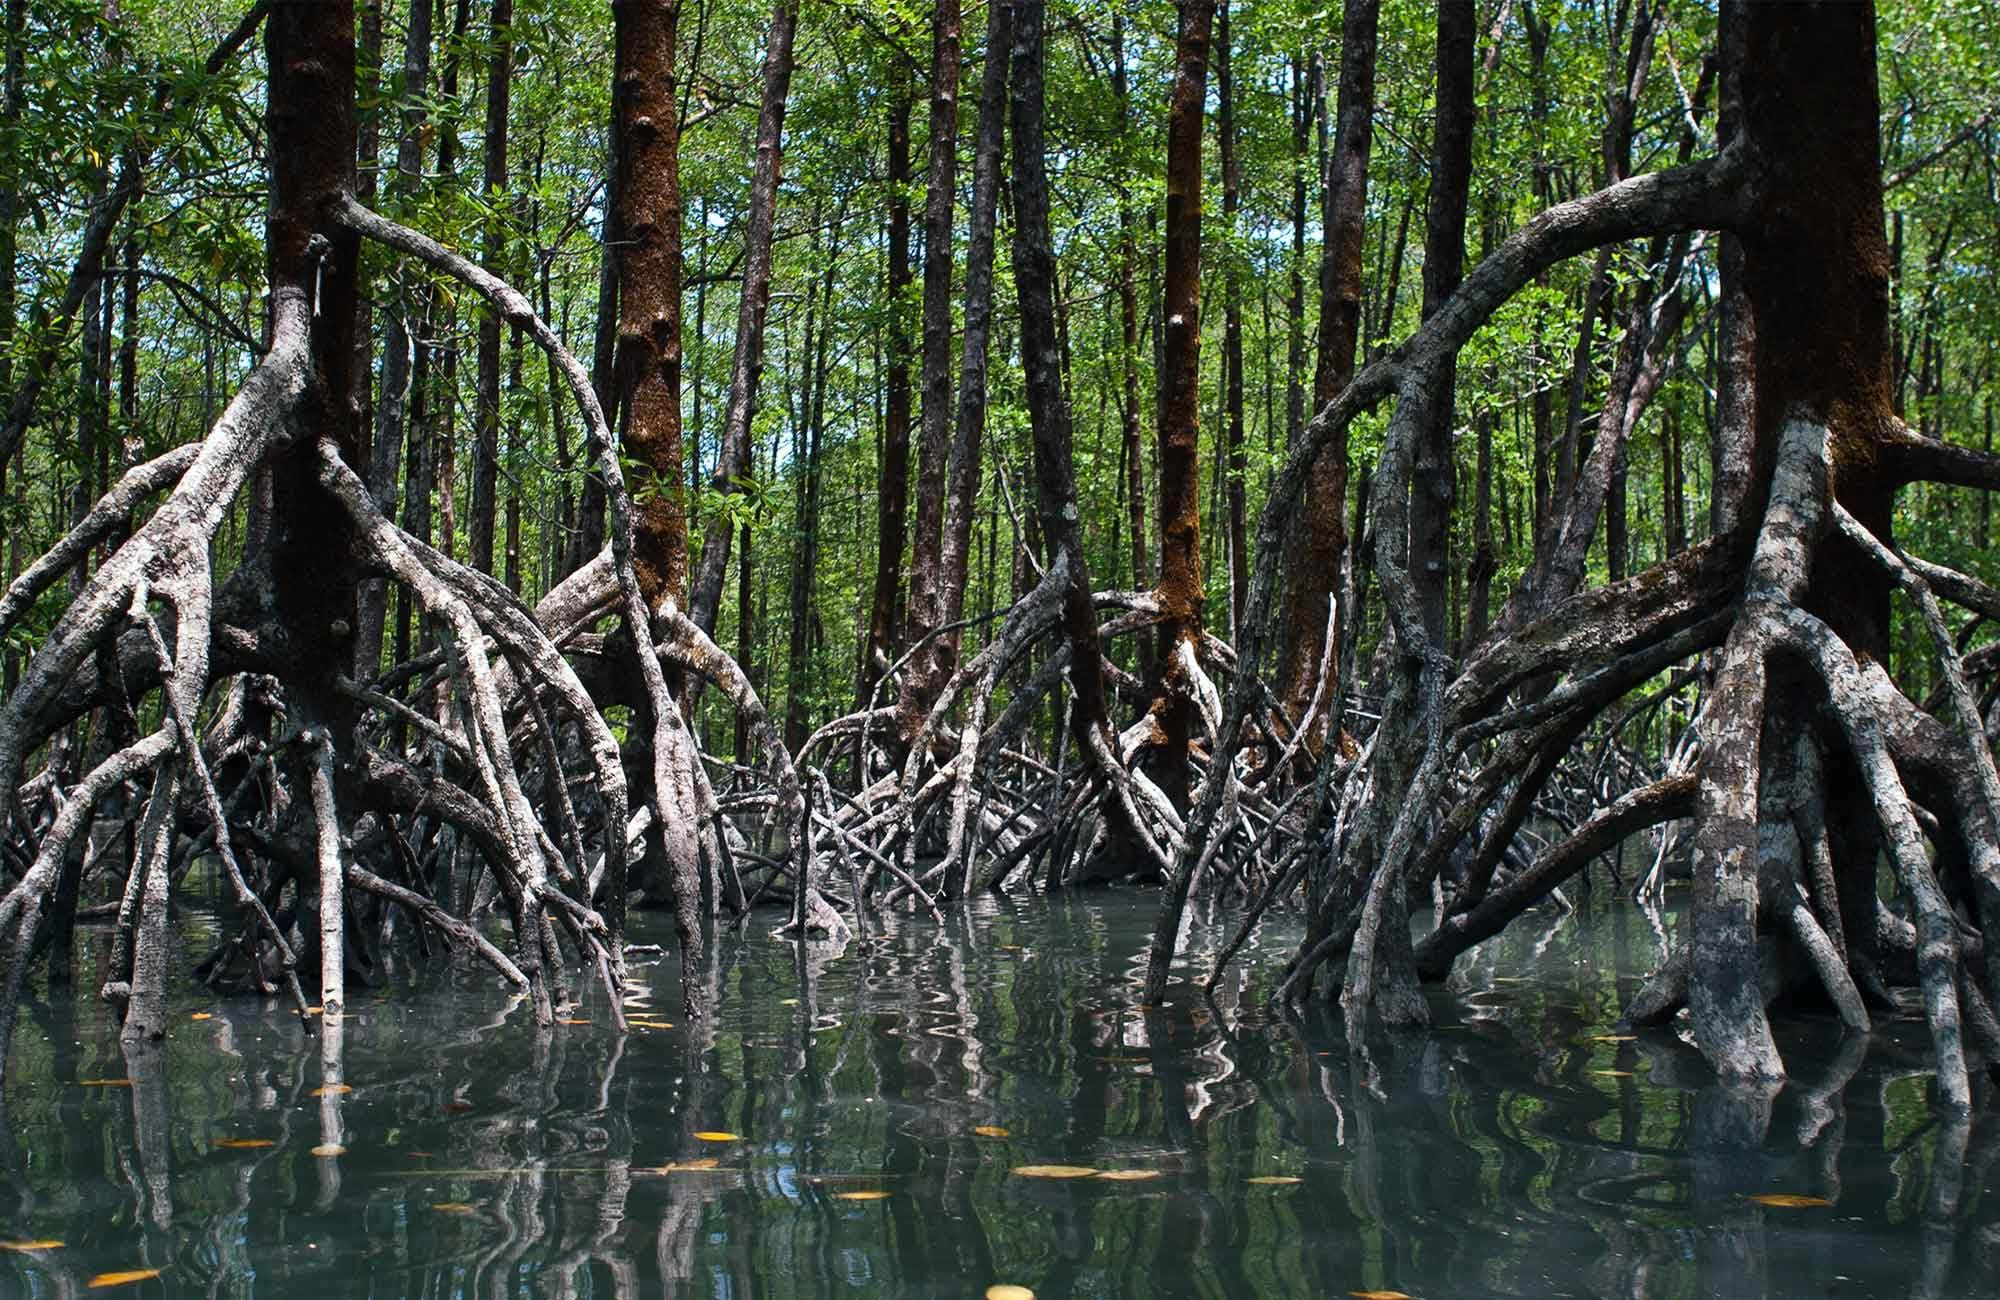 mangroves in myanmar